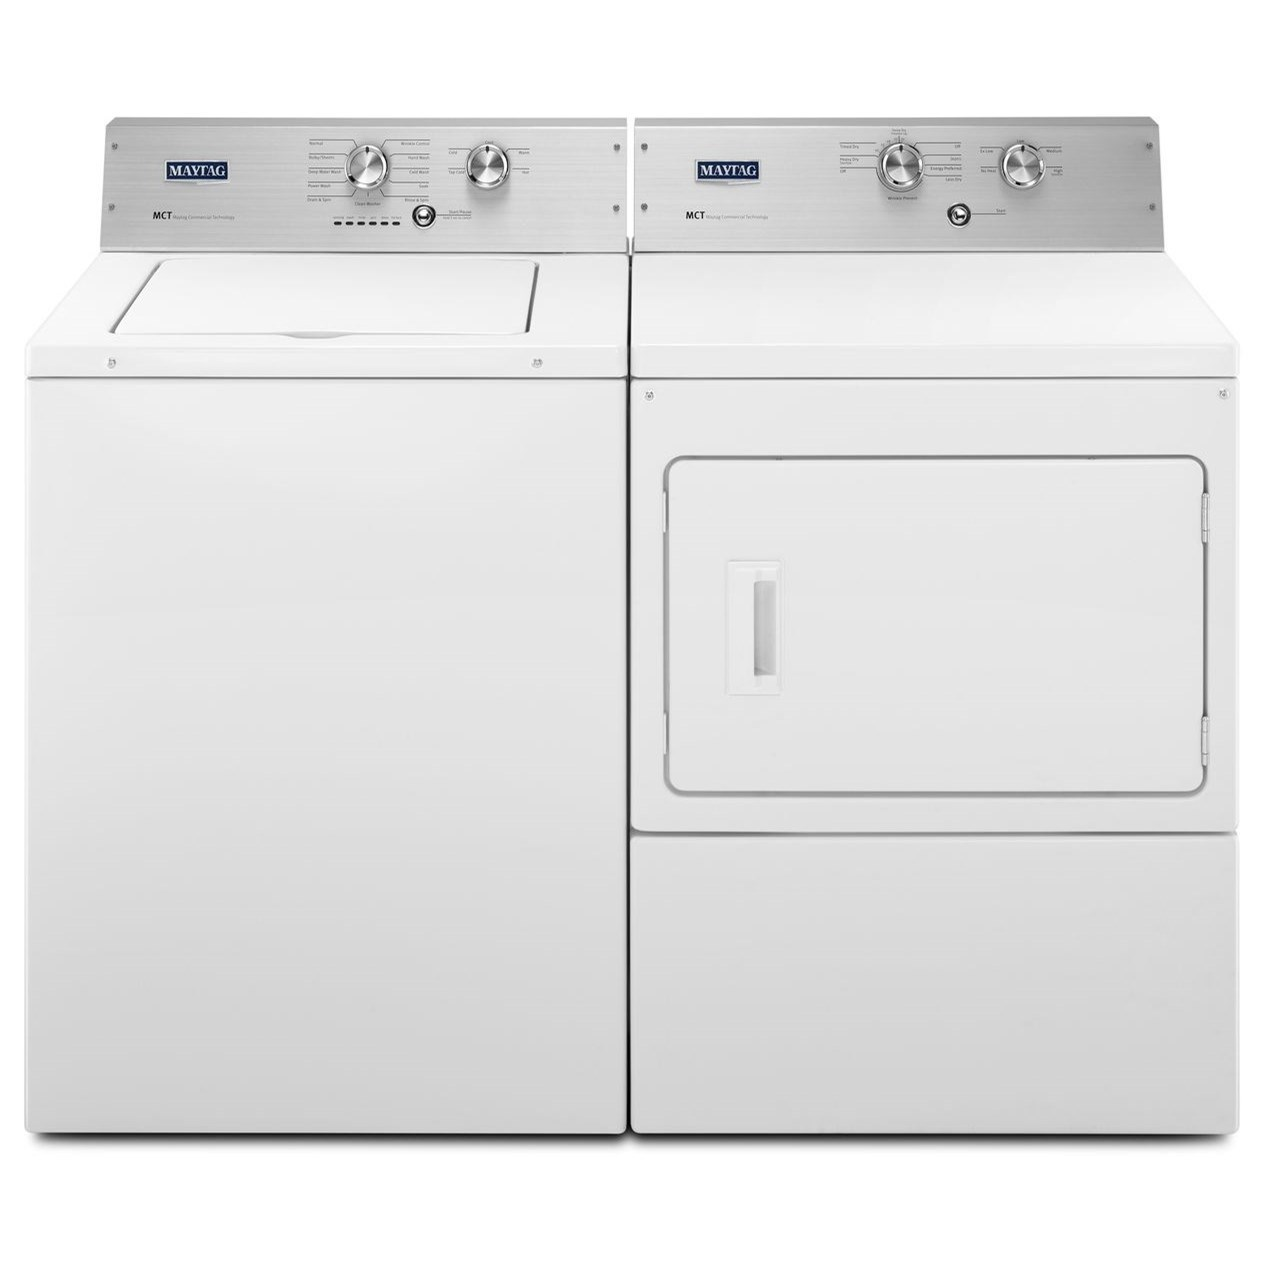 Washer and Dryer Sets 3.6 Cu. Ft. Washer and 7.4 Cu. Ft. Dryer by Maytag at Pedigo Furniture